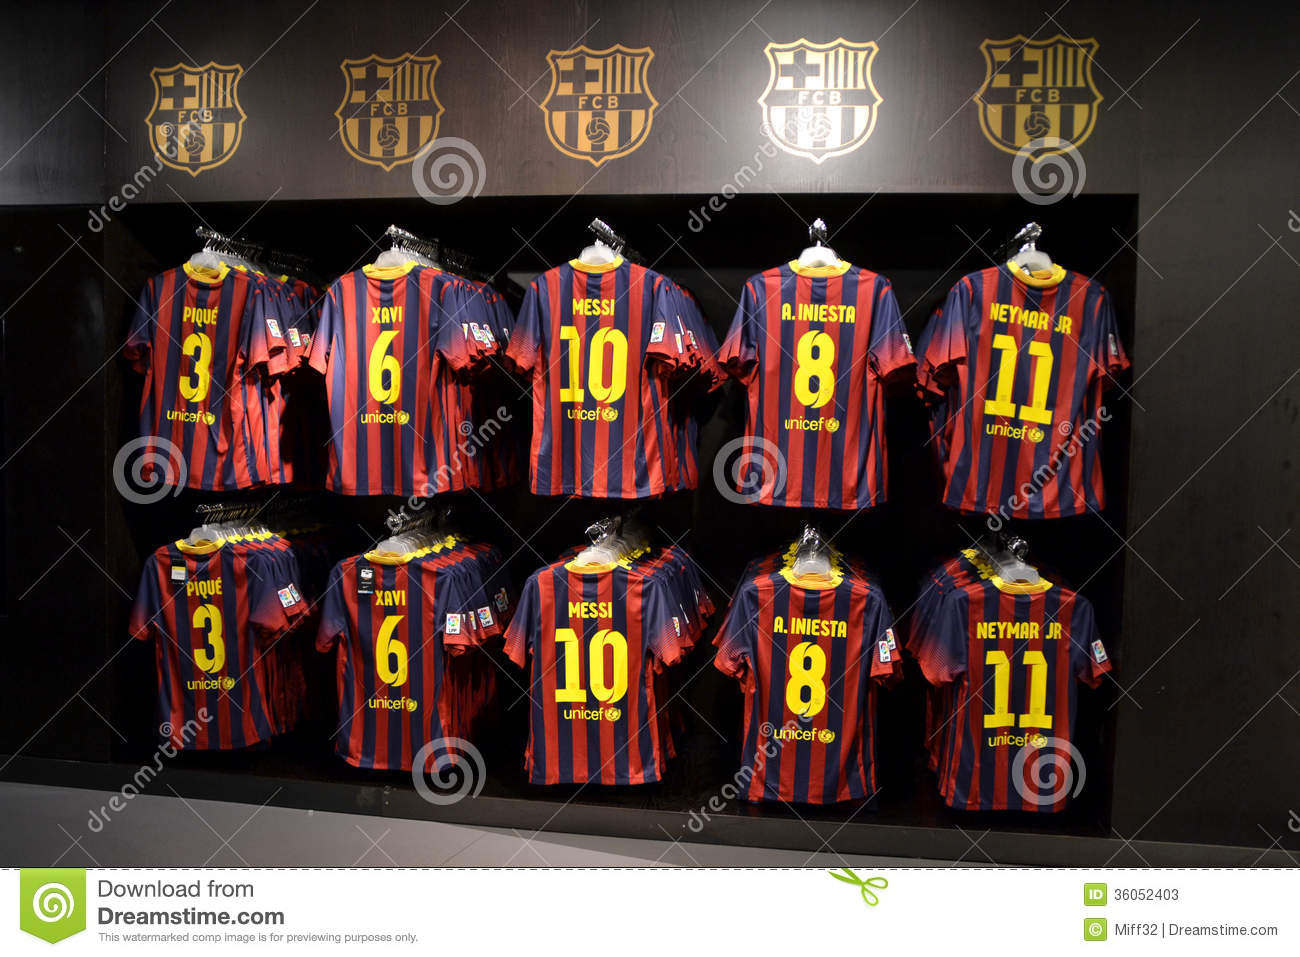 fc barcelona shirts in fc barcelona shop spain editorial stock photo image 36052403. Black Bedroom Furniture Sets. Home Design Ideas